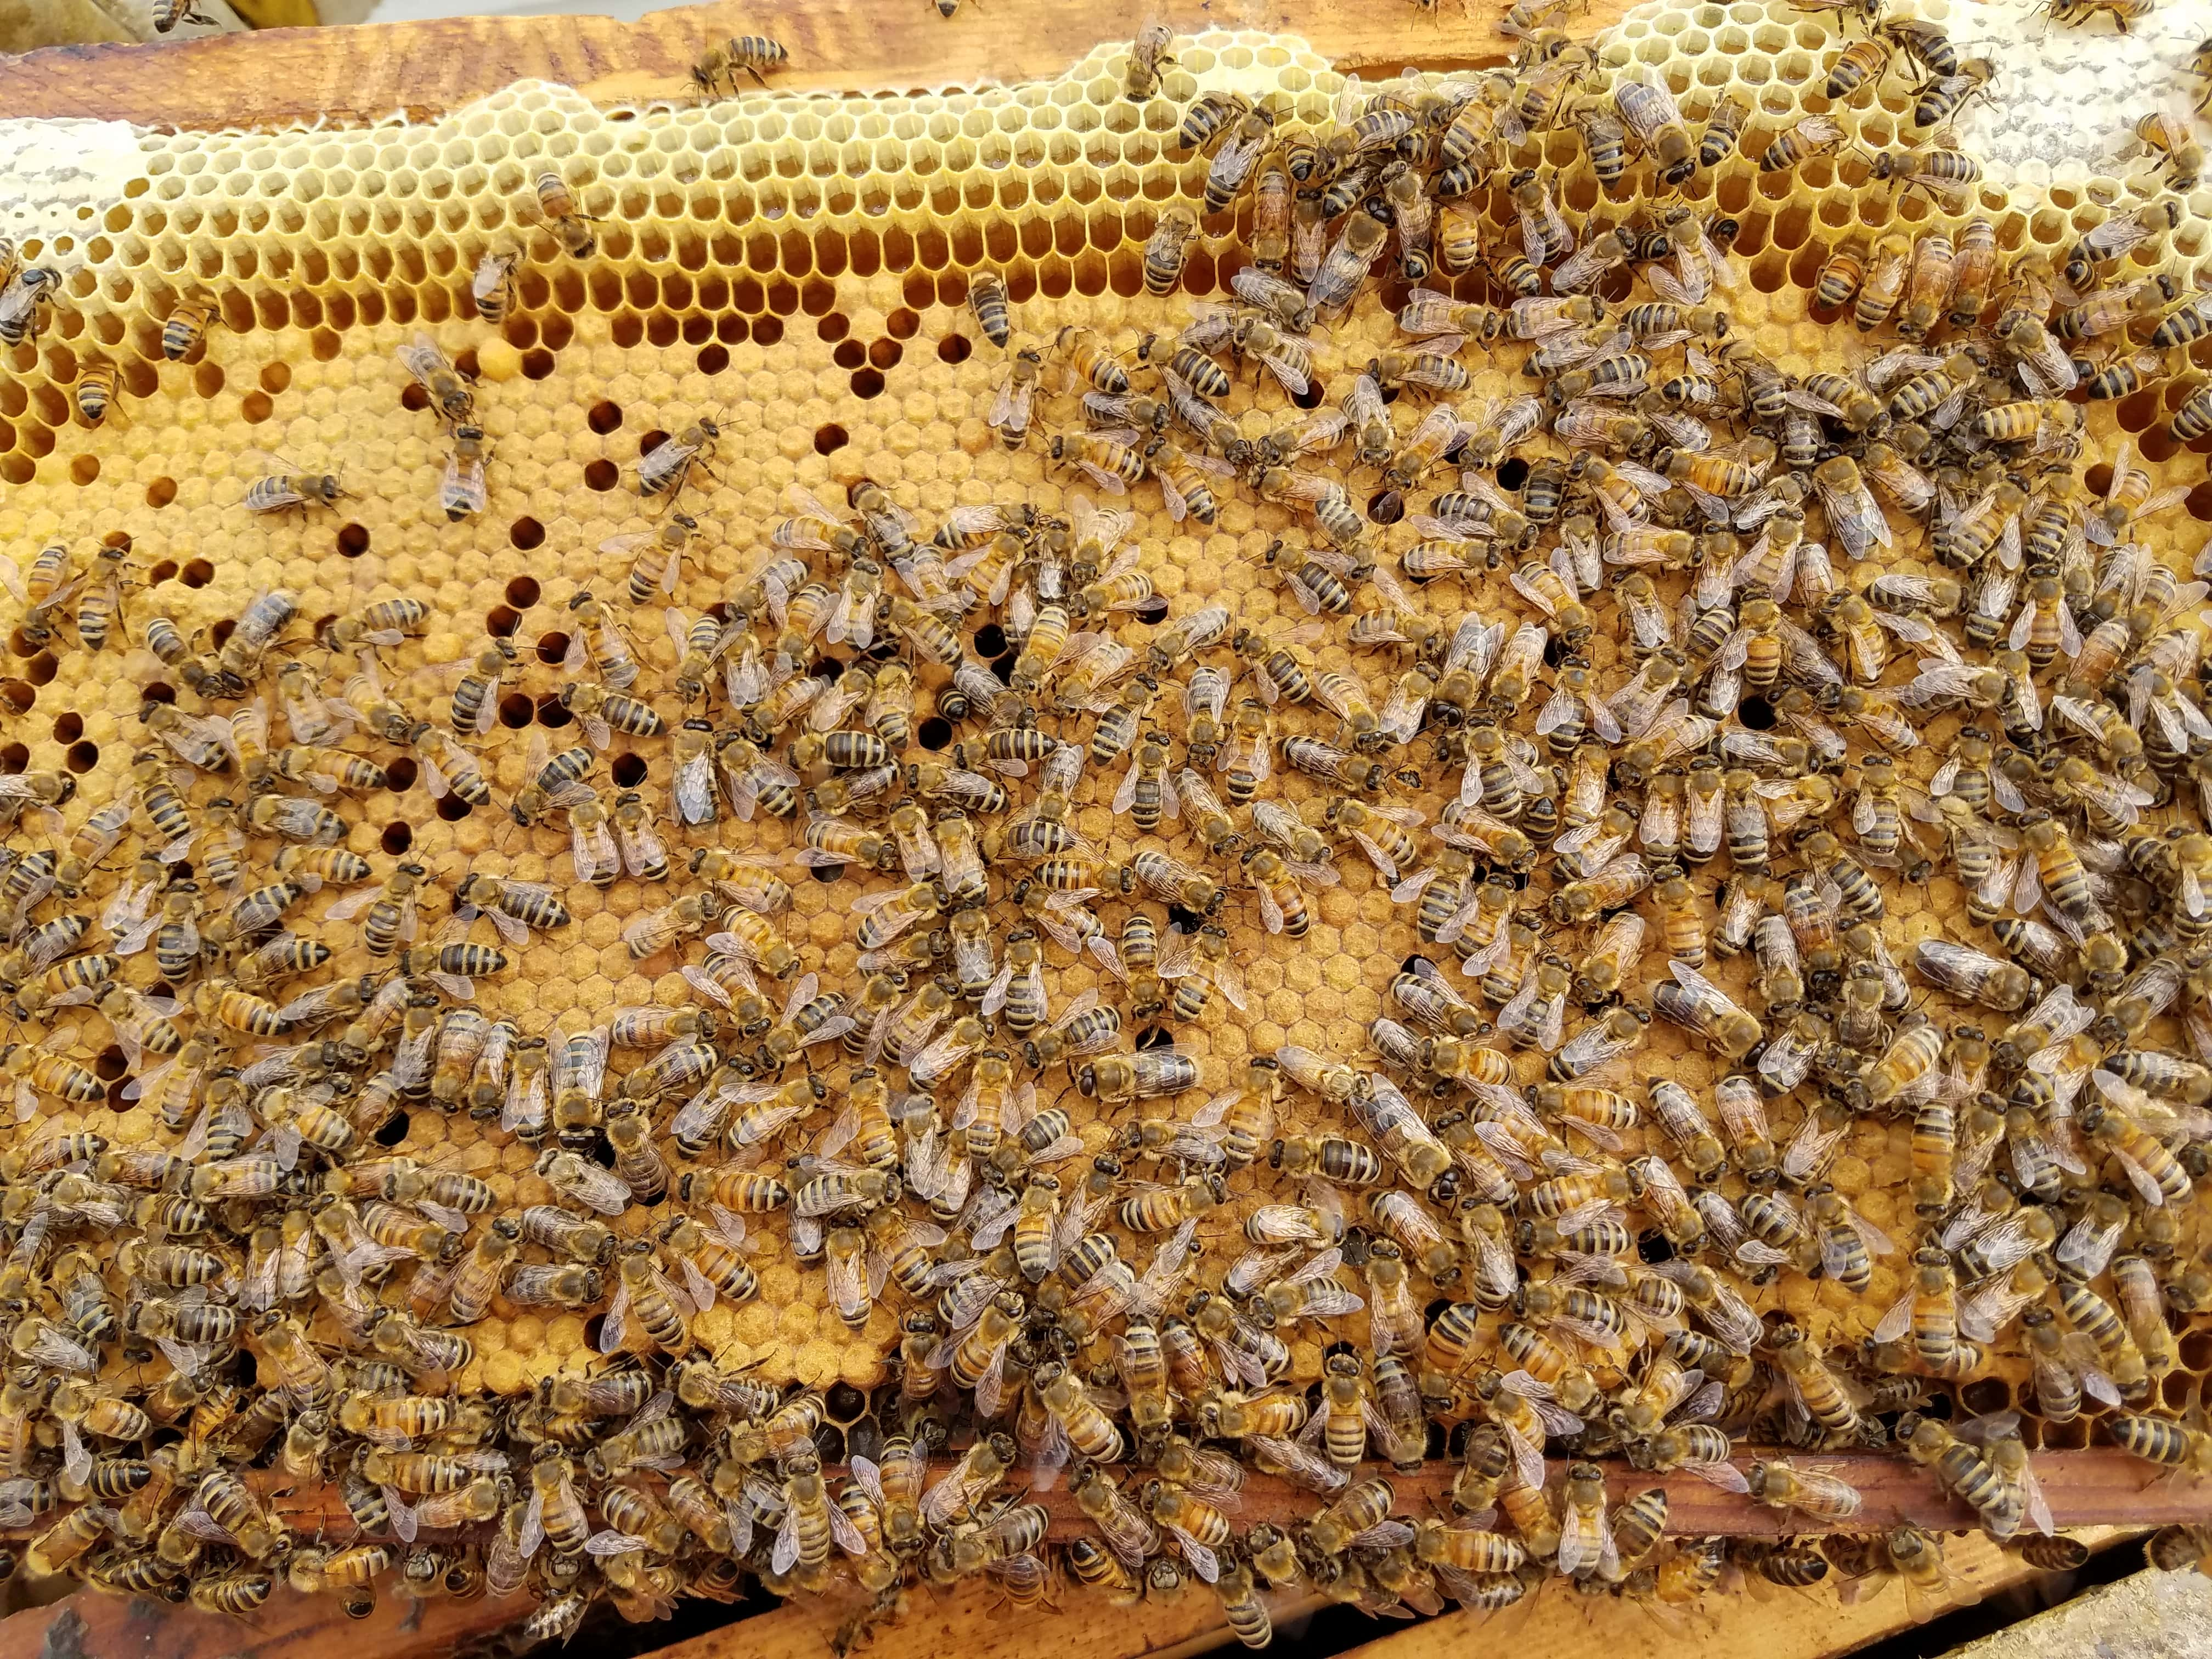 Free Shipping Italian Carniolan Saskatraz queen honey bees for sale to anywhere in the USA including AL AK AR AZ CA CO CT DE FL GA ID IL IN IA KS KY LA ME MD MA MI MN MS MO MT NE NV NH NJ NM NY NC ND OH OK OR PA RI SC SD TN TX UT VT VA WA WV WI WY